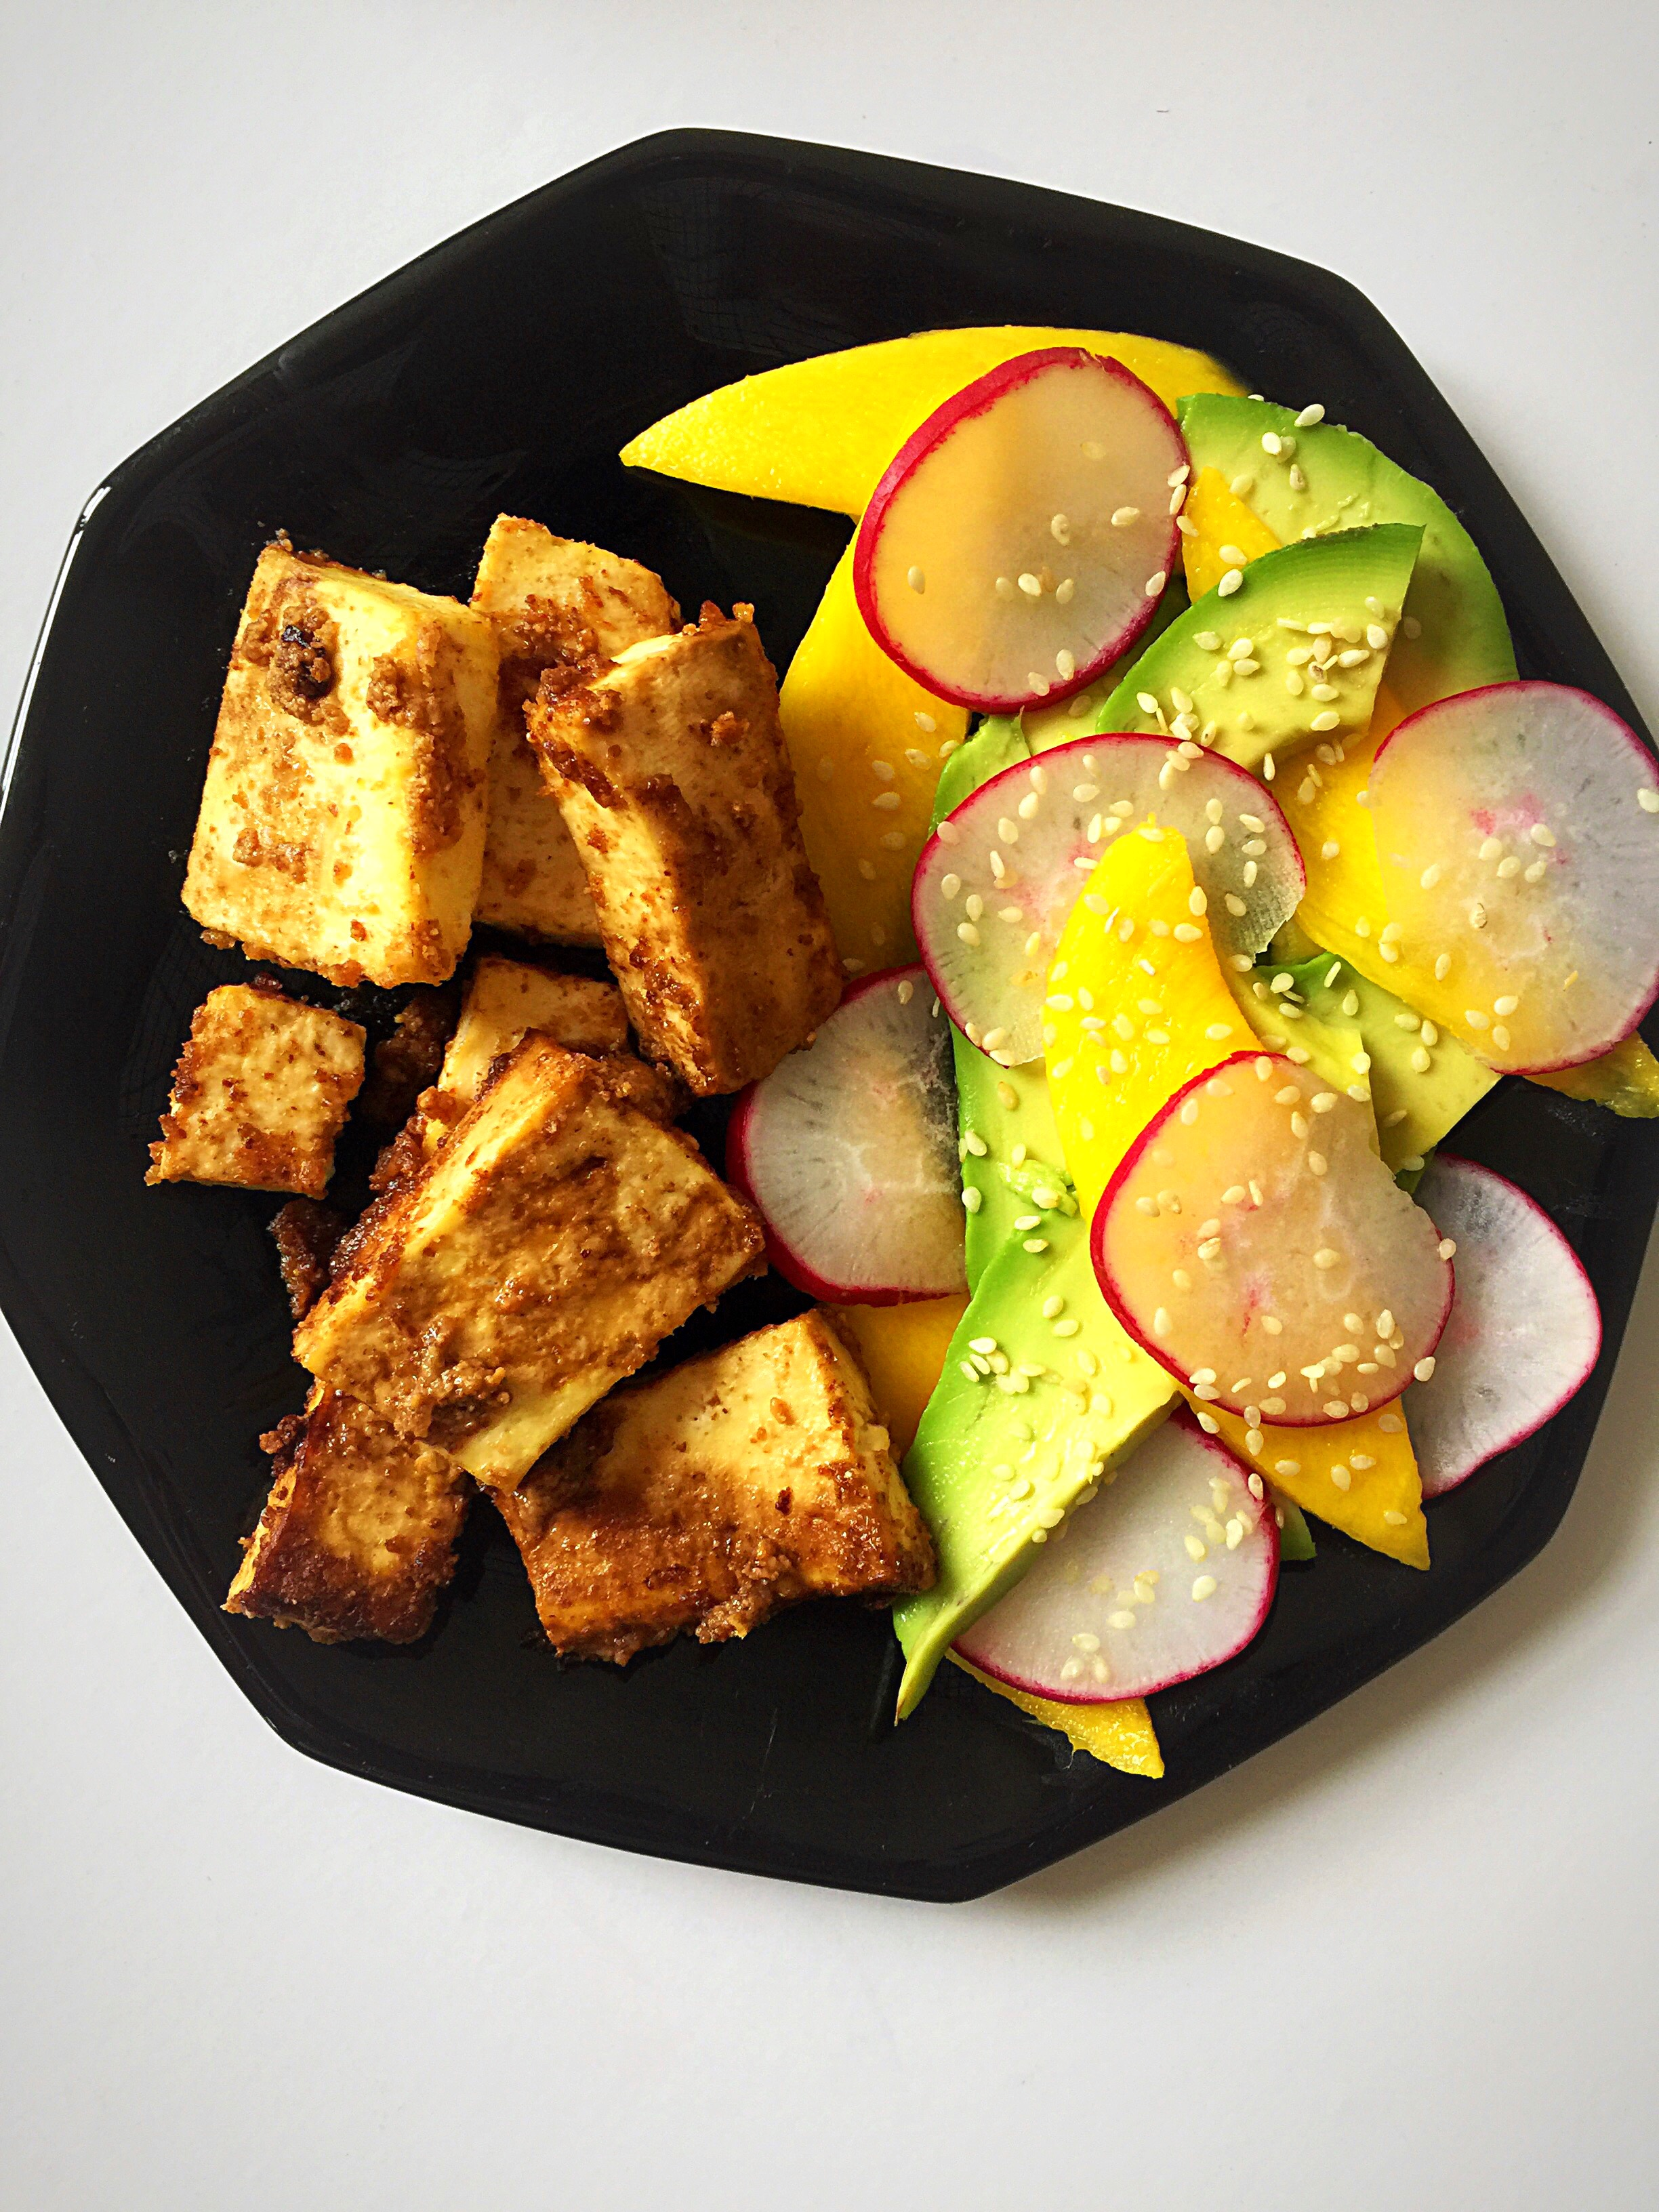 Almond Butter Roasted Tofu with Mango Avocado Salad | Whisk and Shout